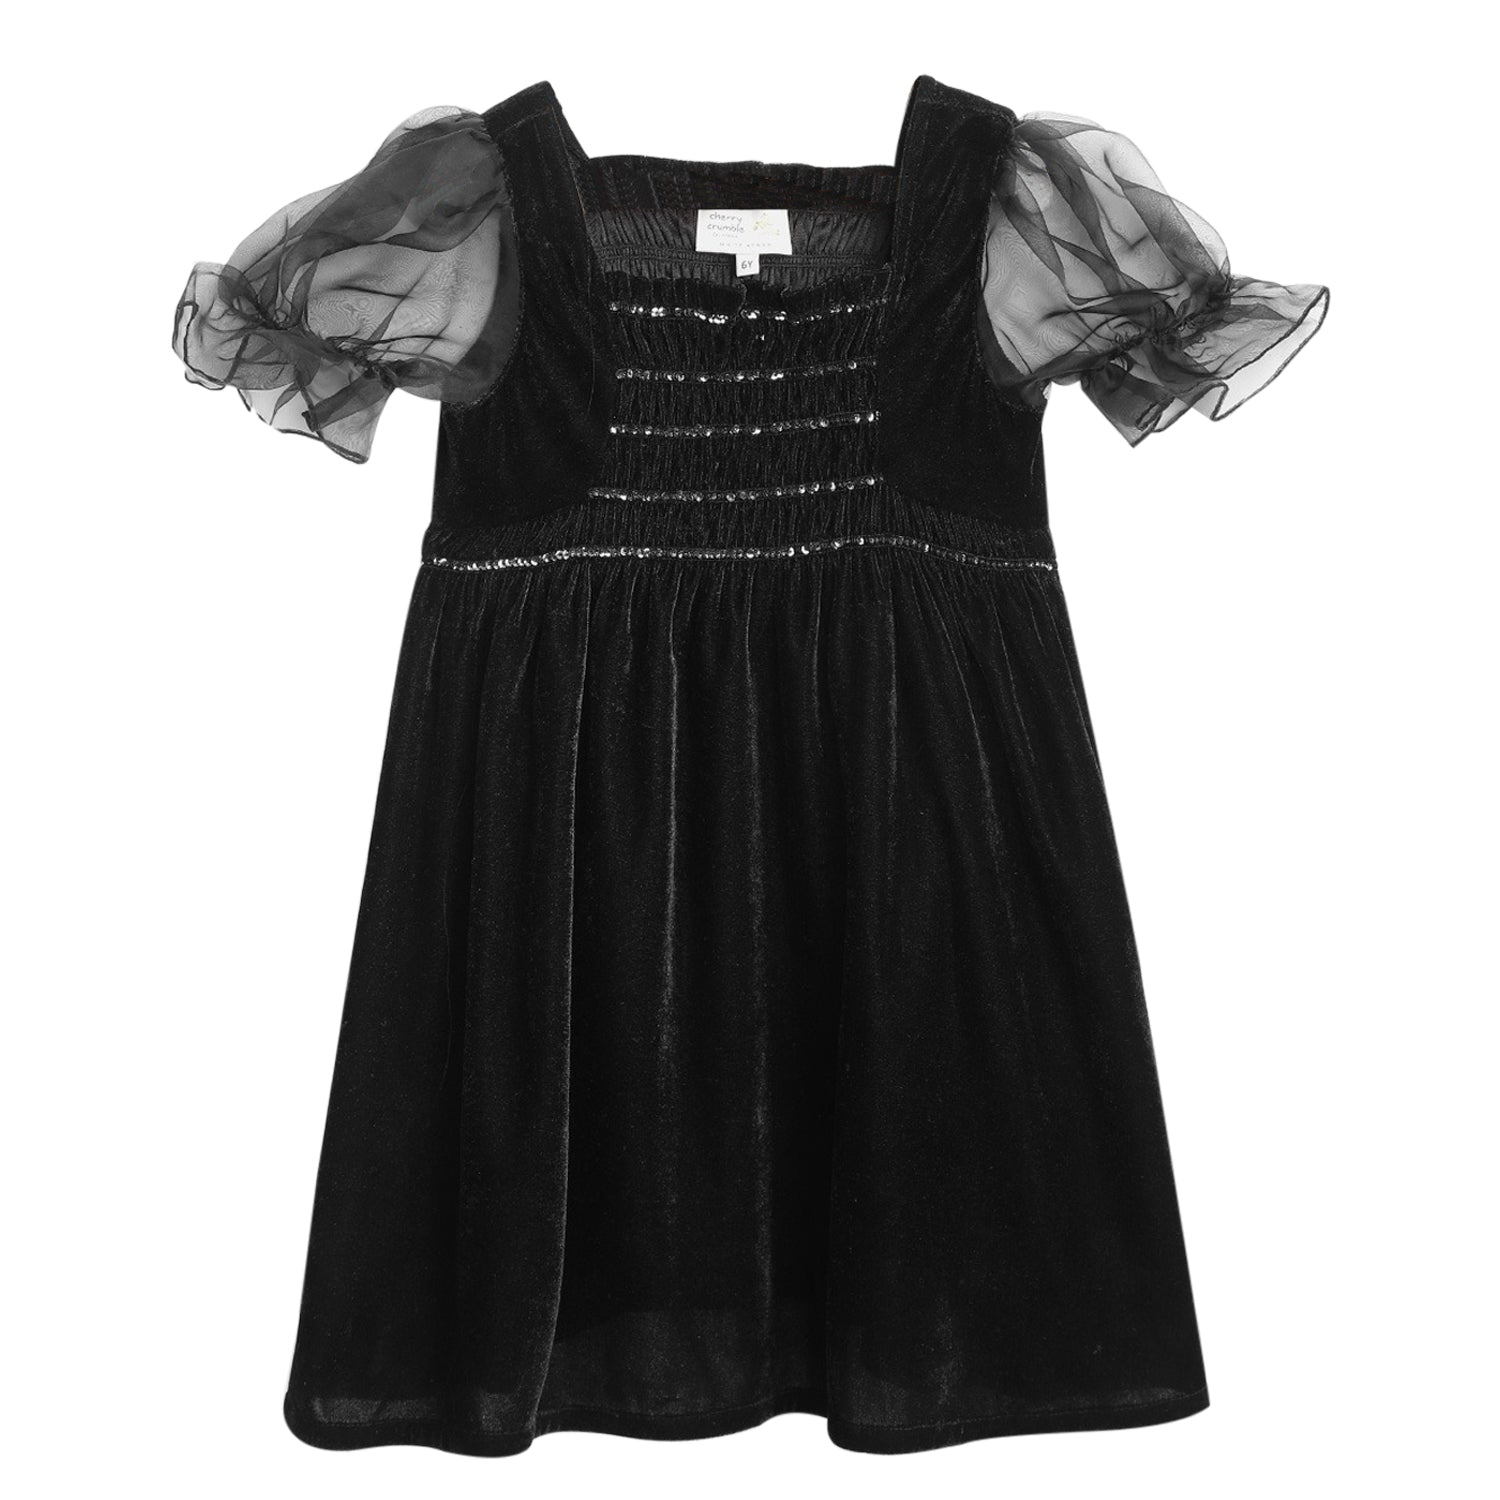 Cherry-Crumble-Kids-Short-Sleeve-Puff-Sleeves-Square-Neck-Solid-Fit-&-Flare-Dress